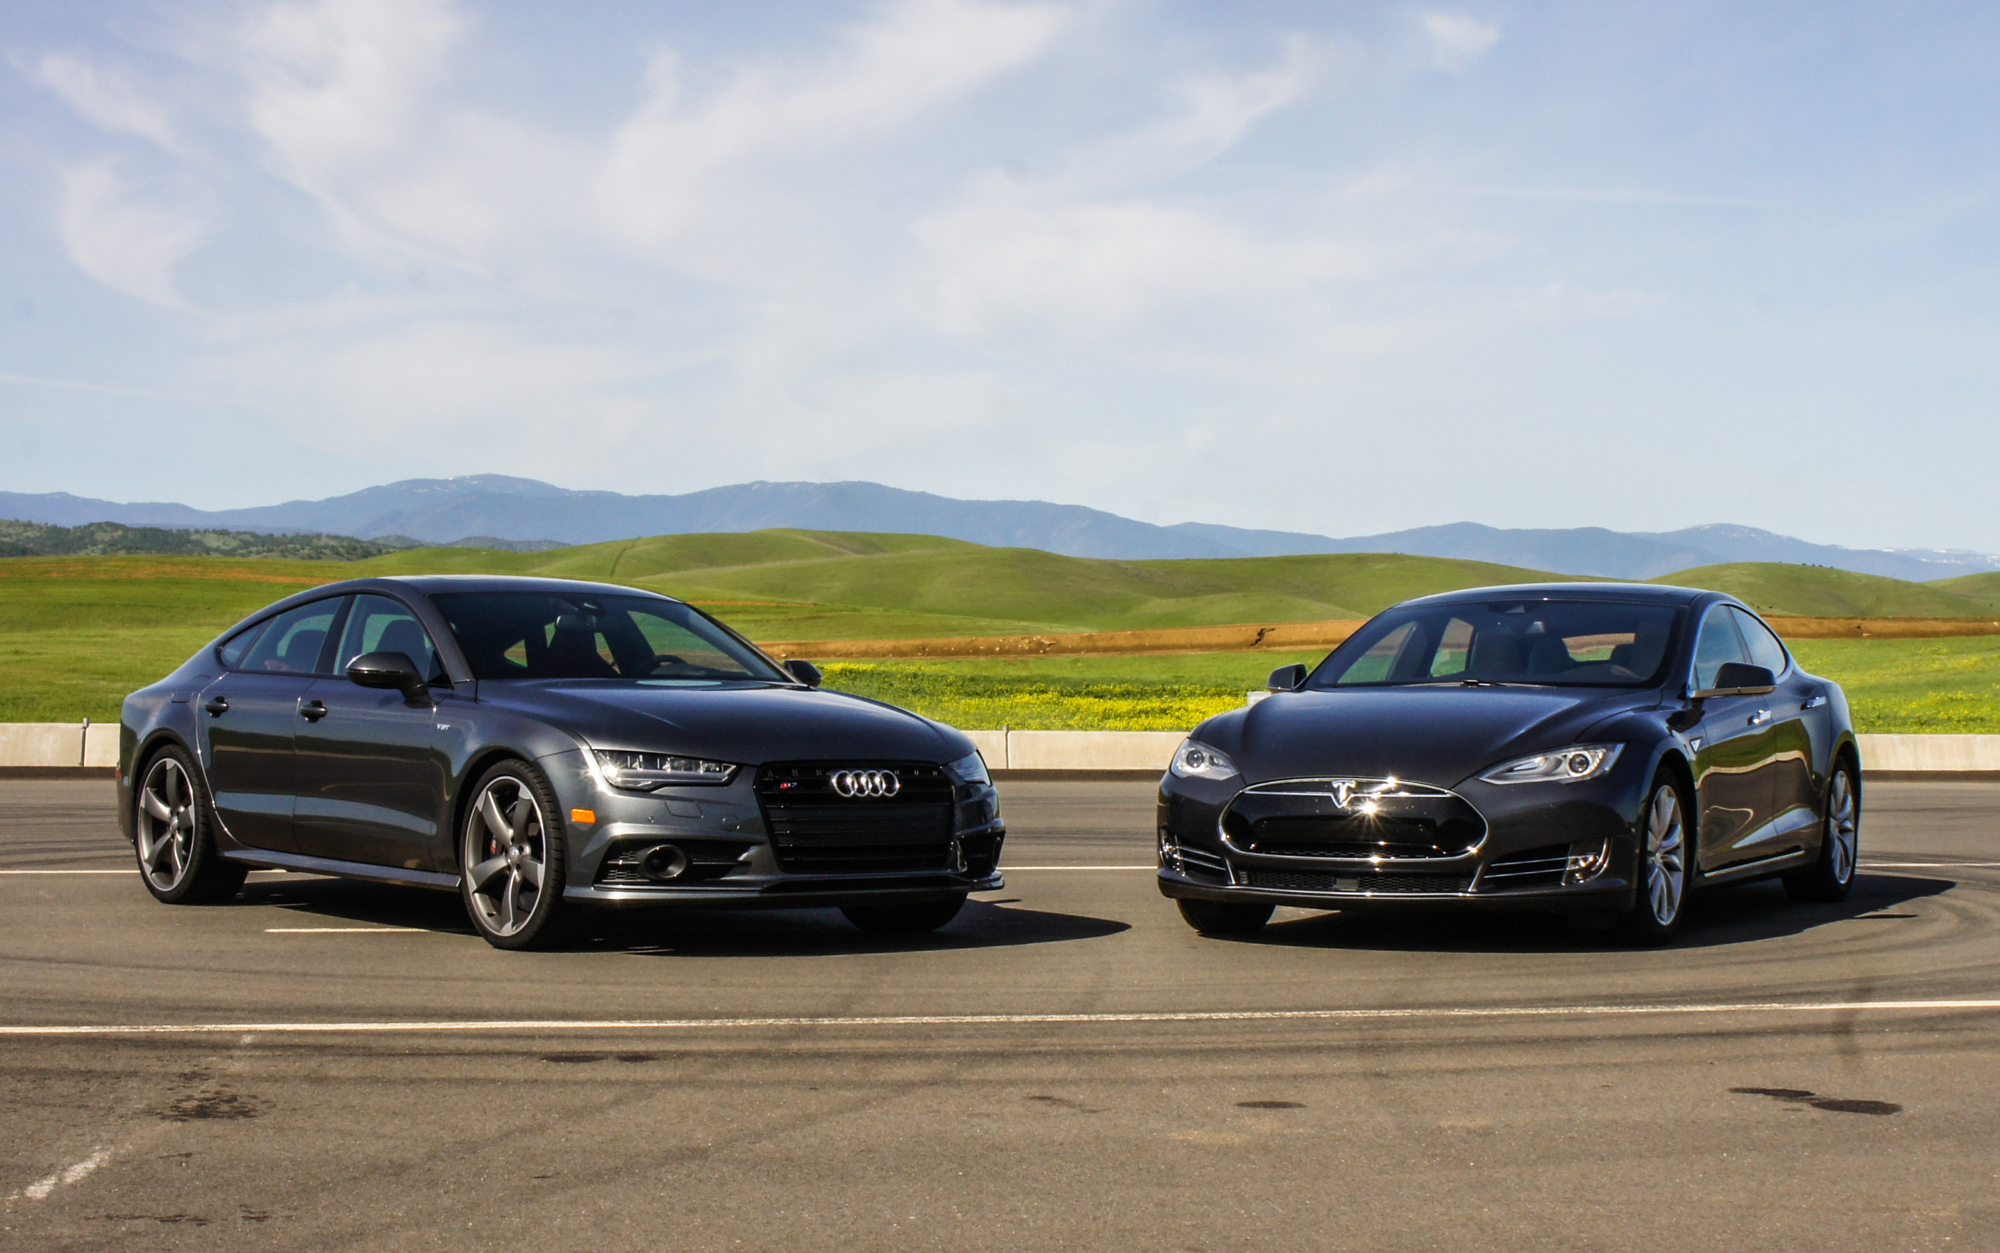 Video: Shootout: Tesla Model S vs. Audi S7 for high-tech performance